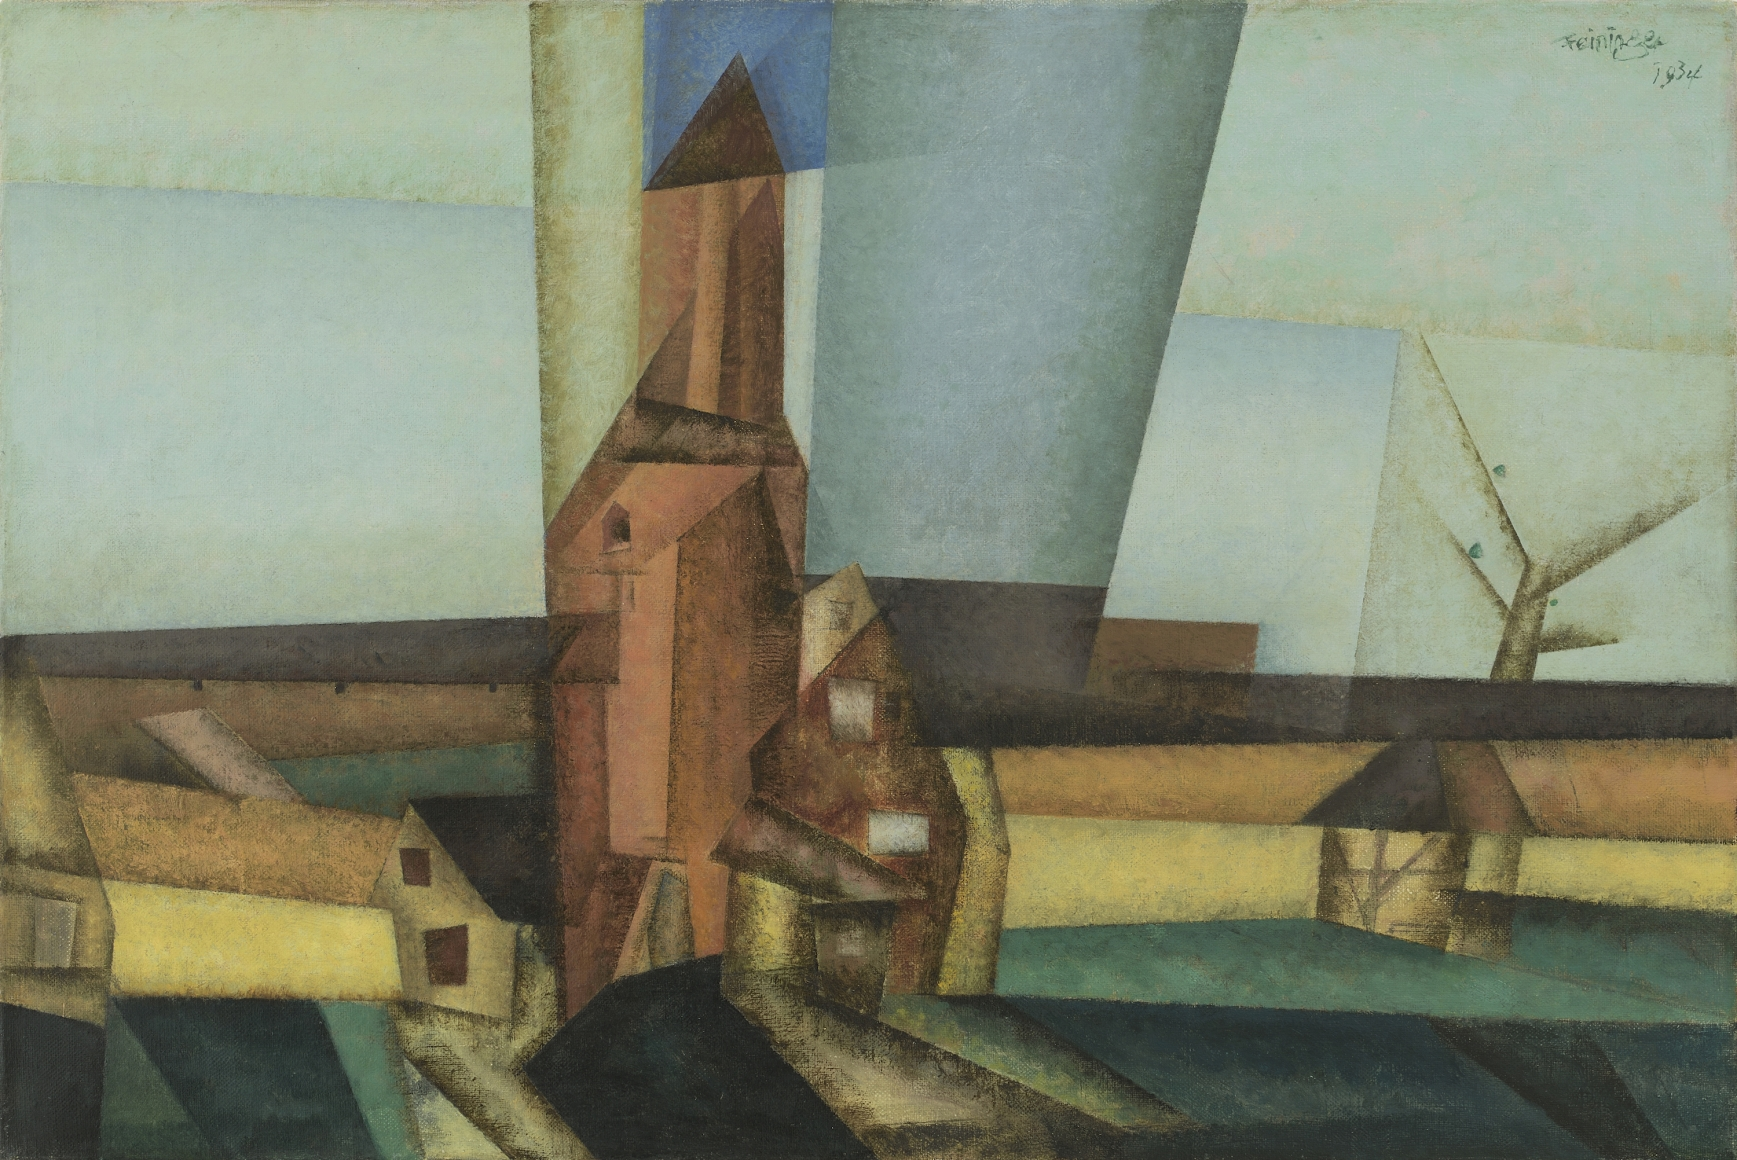 "Lyonel Feininger, Der Pulverturm II (The Powder Tower II), 1934, Oil on canvas, 19 7/16 x 28 3/8 in. (49.4 x 72.1 cm), Signed and dated upper right: Feininger 1934, Inscribed and dated verso on stretcher: Lyonel Feininger 1934, Inscribed, dated and titled verso on label on stretcher: Lyonel Feininger 1934 ""The Powder Tower"""